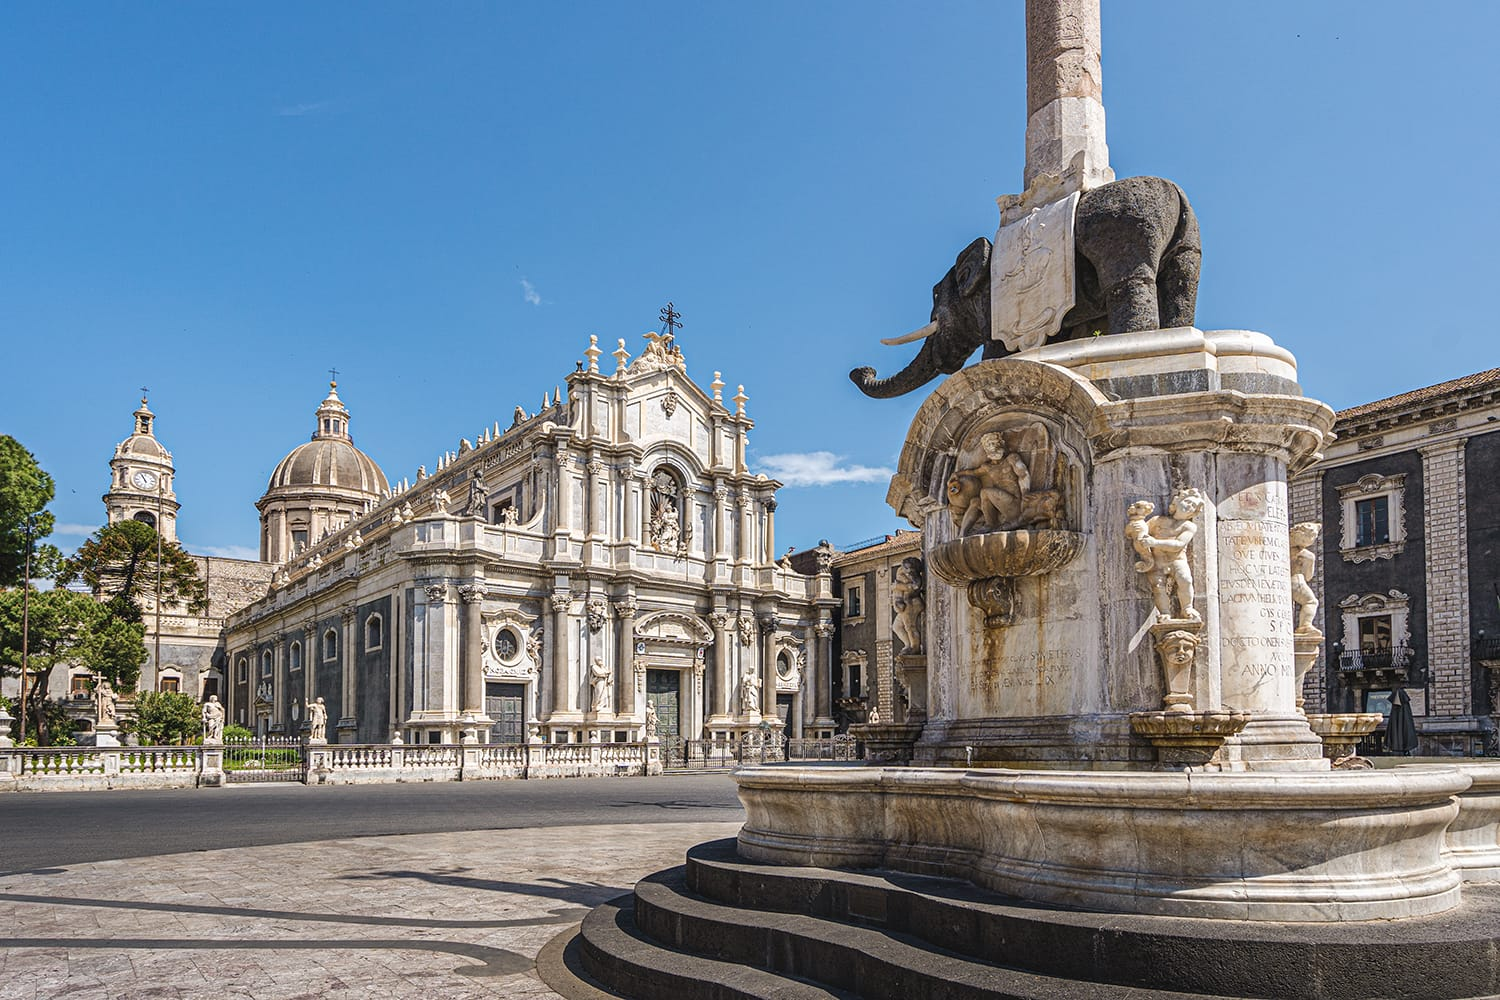 Dome the fountain elephant (1737) and the Cathedral of Saint Agatha in Catania, Sicily, Italy